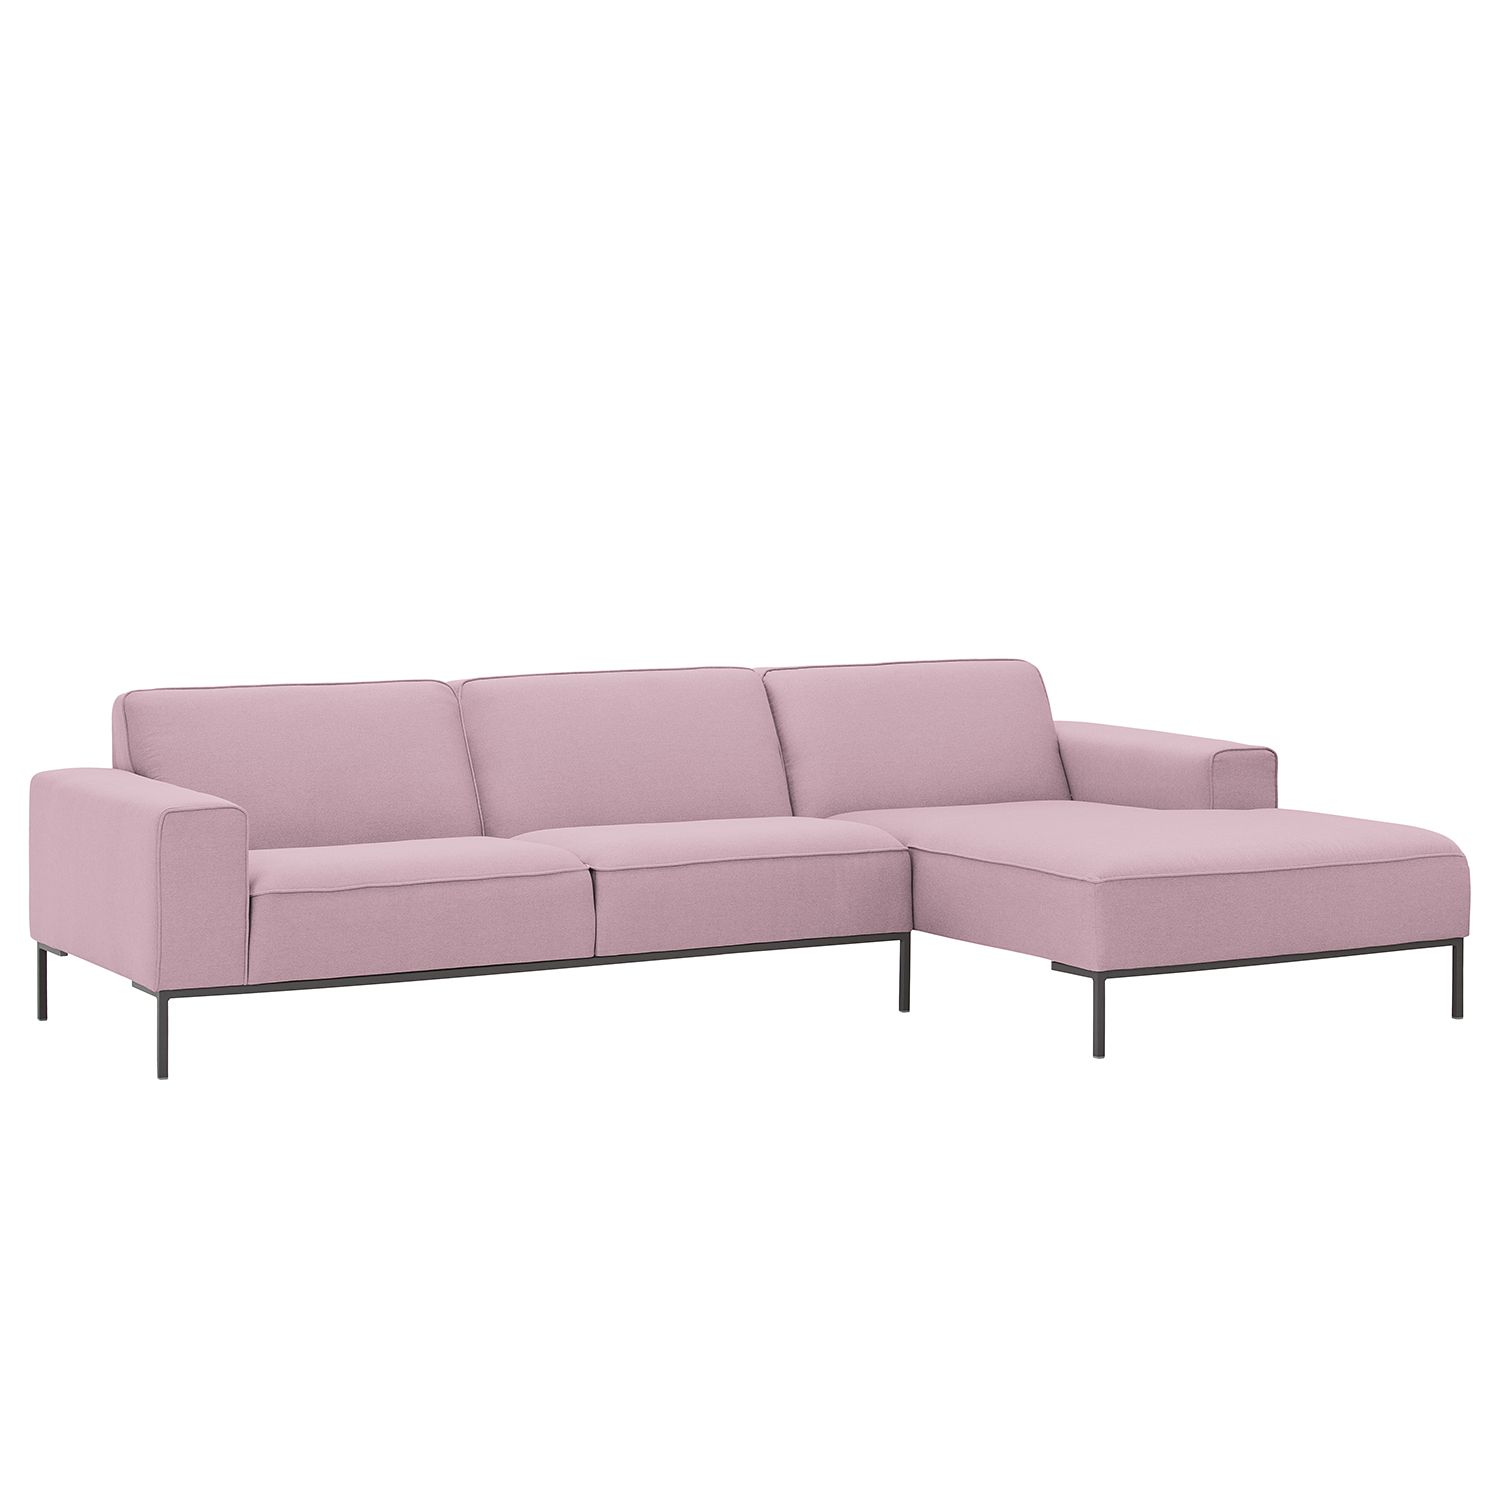 ecksofa ampio ii webstoff longchair ottomane davorstehend rechts grau stoff floreana rosa. Black Bedroom Furniture Sets. Home Design Ideas